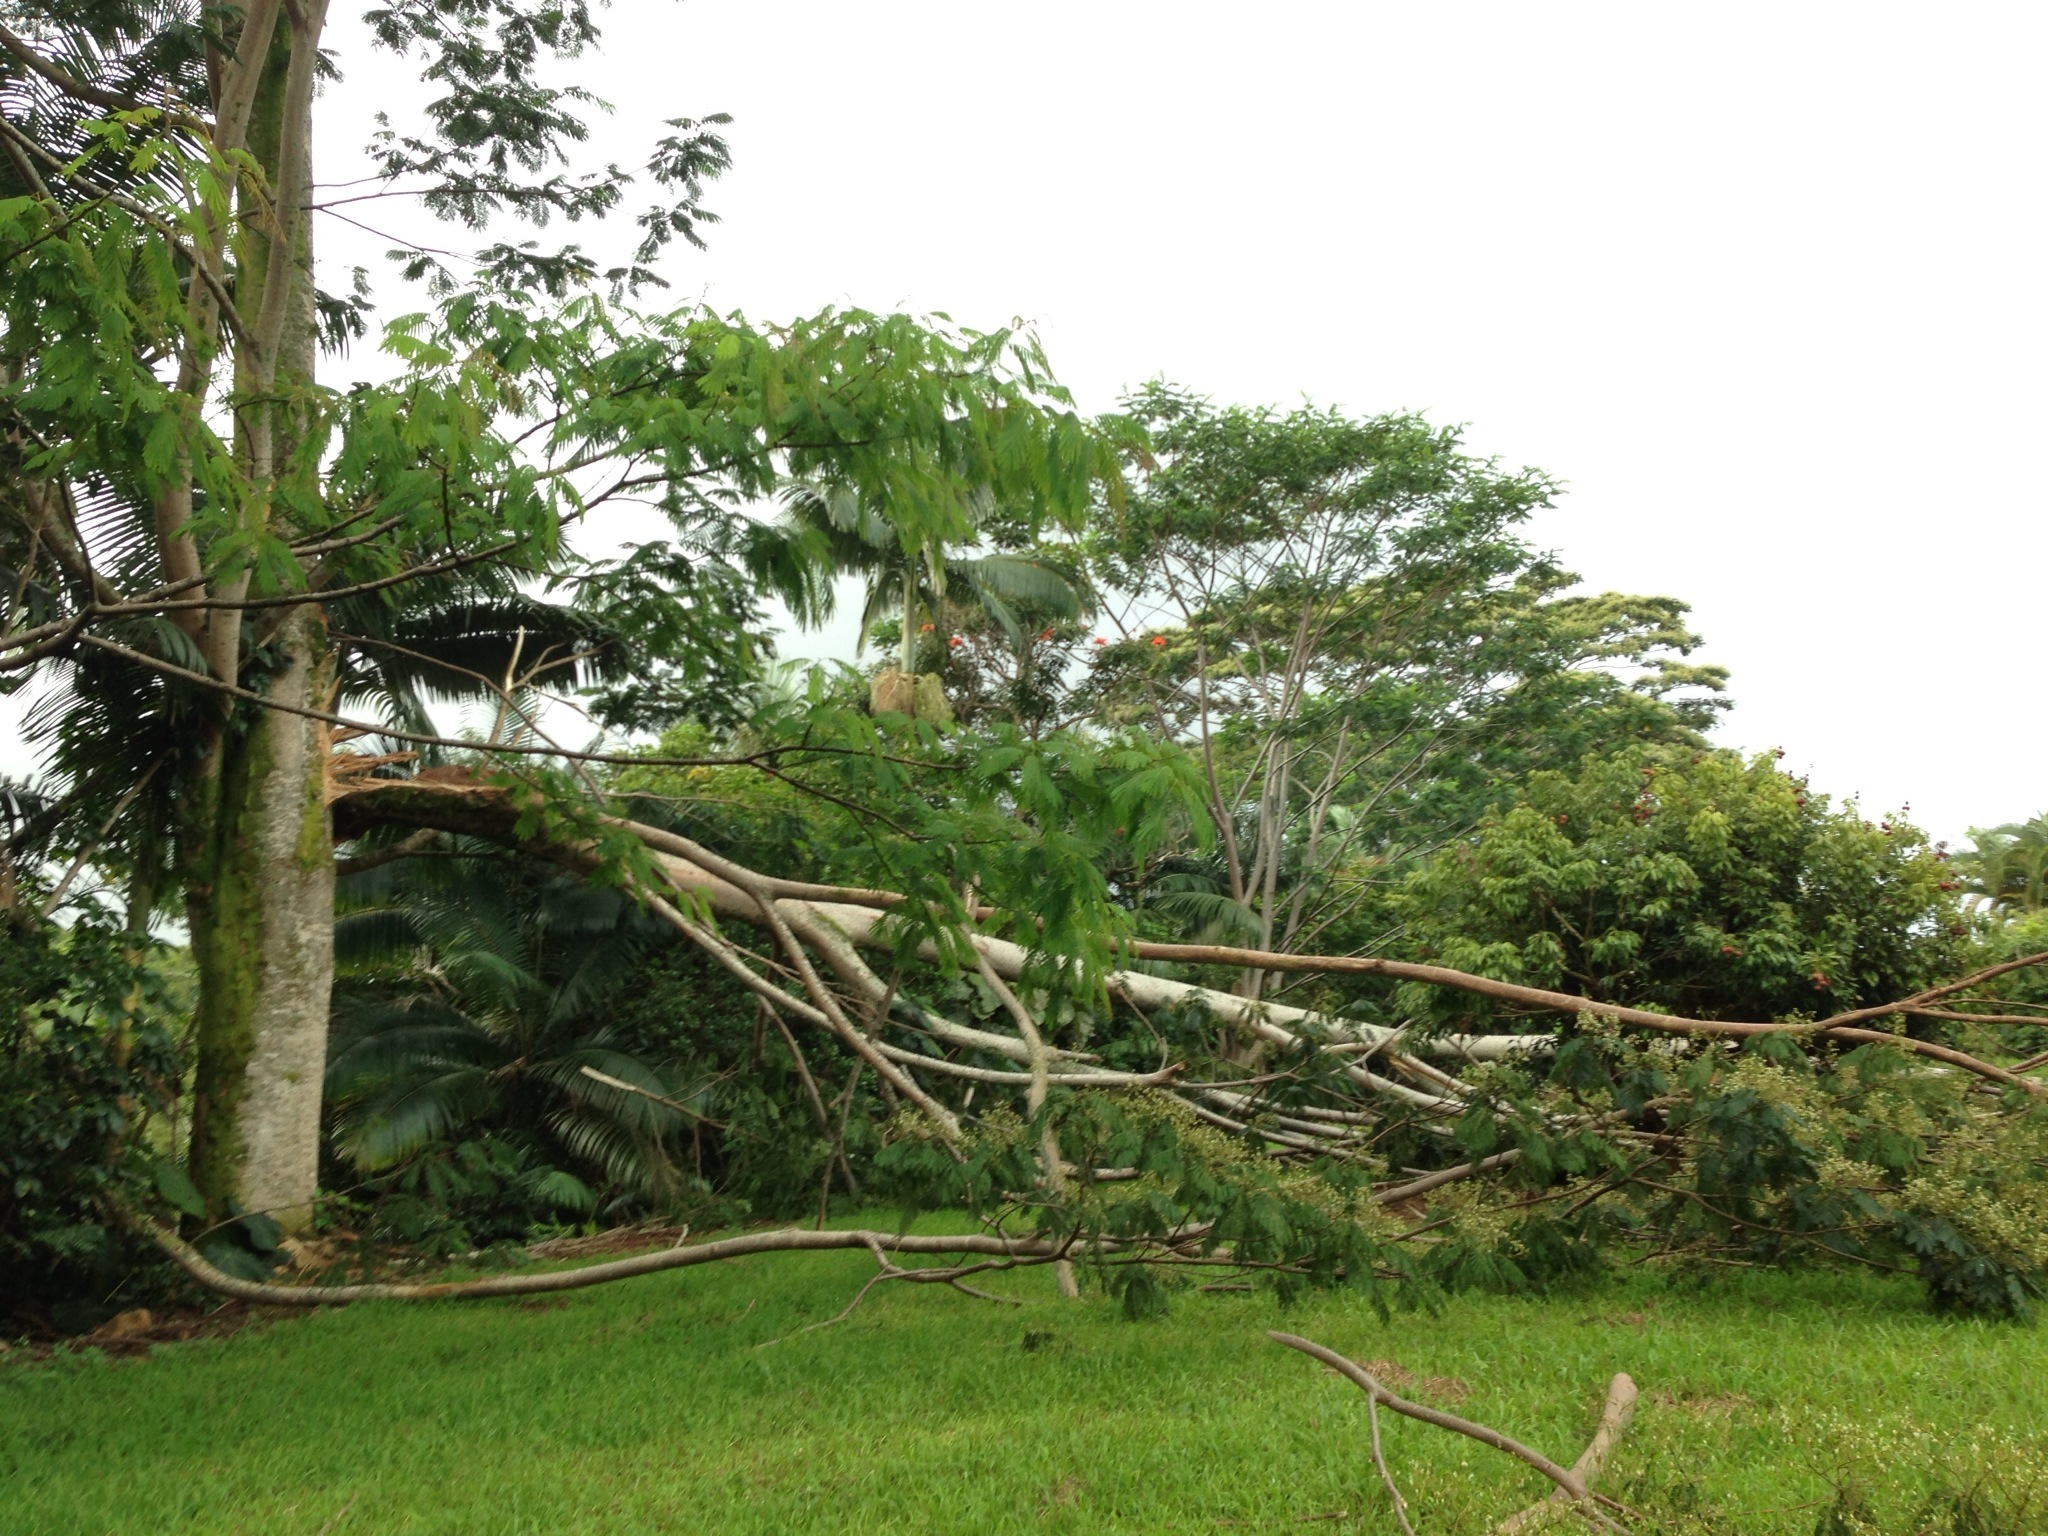 State Lawmaker Also Targets 'Tree That Ate Puna'